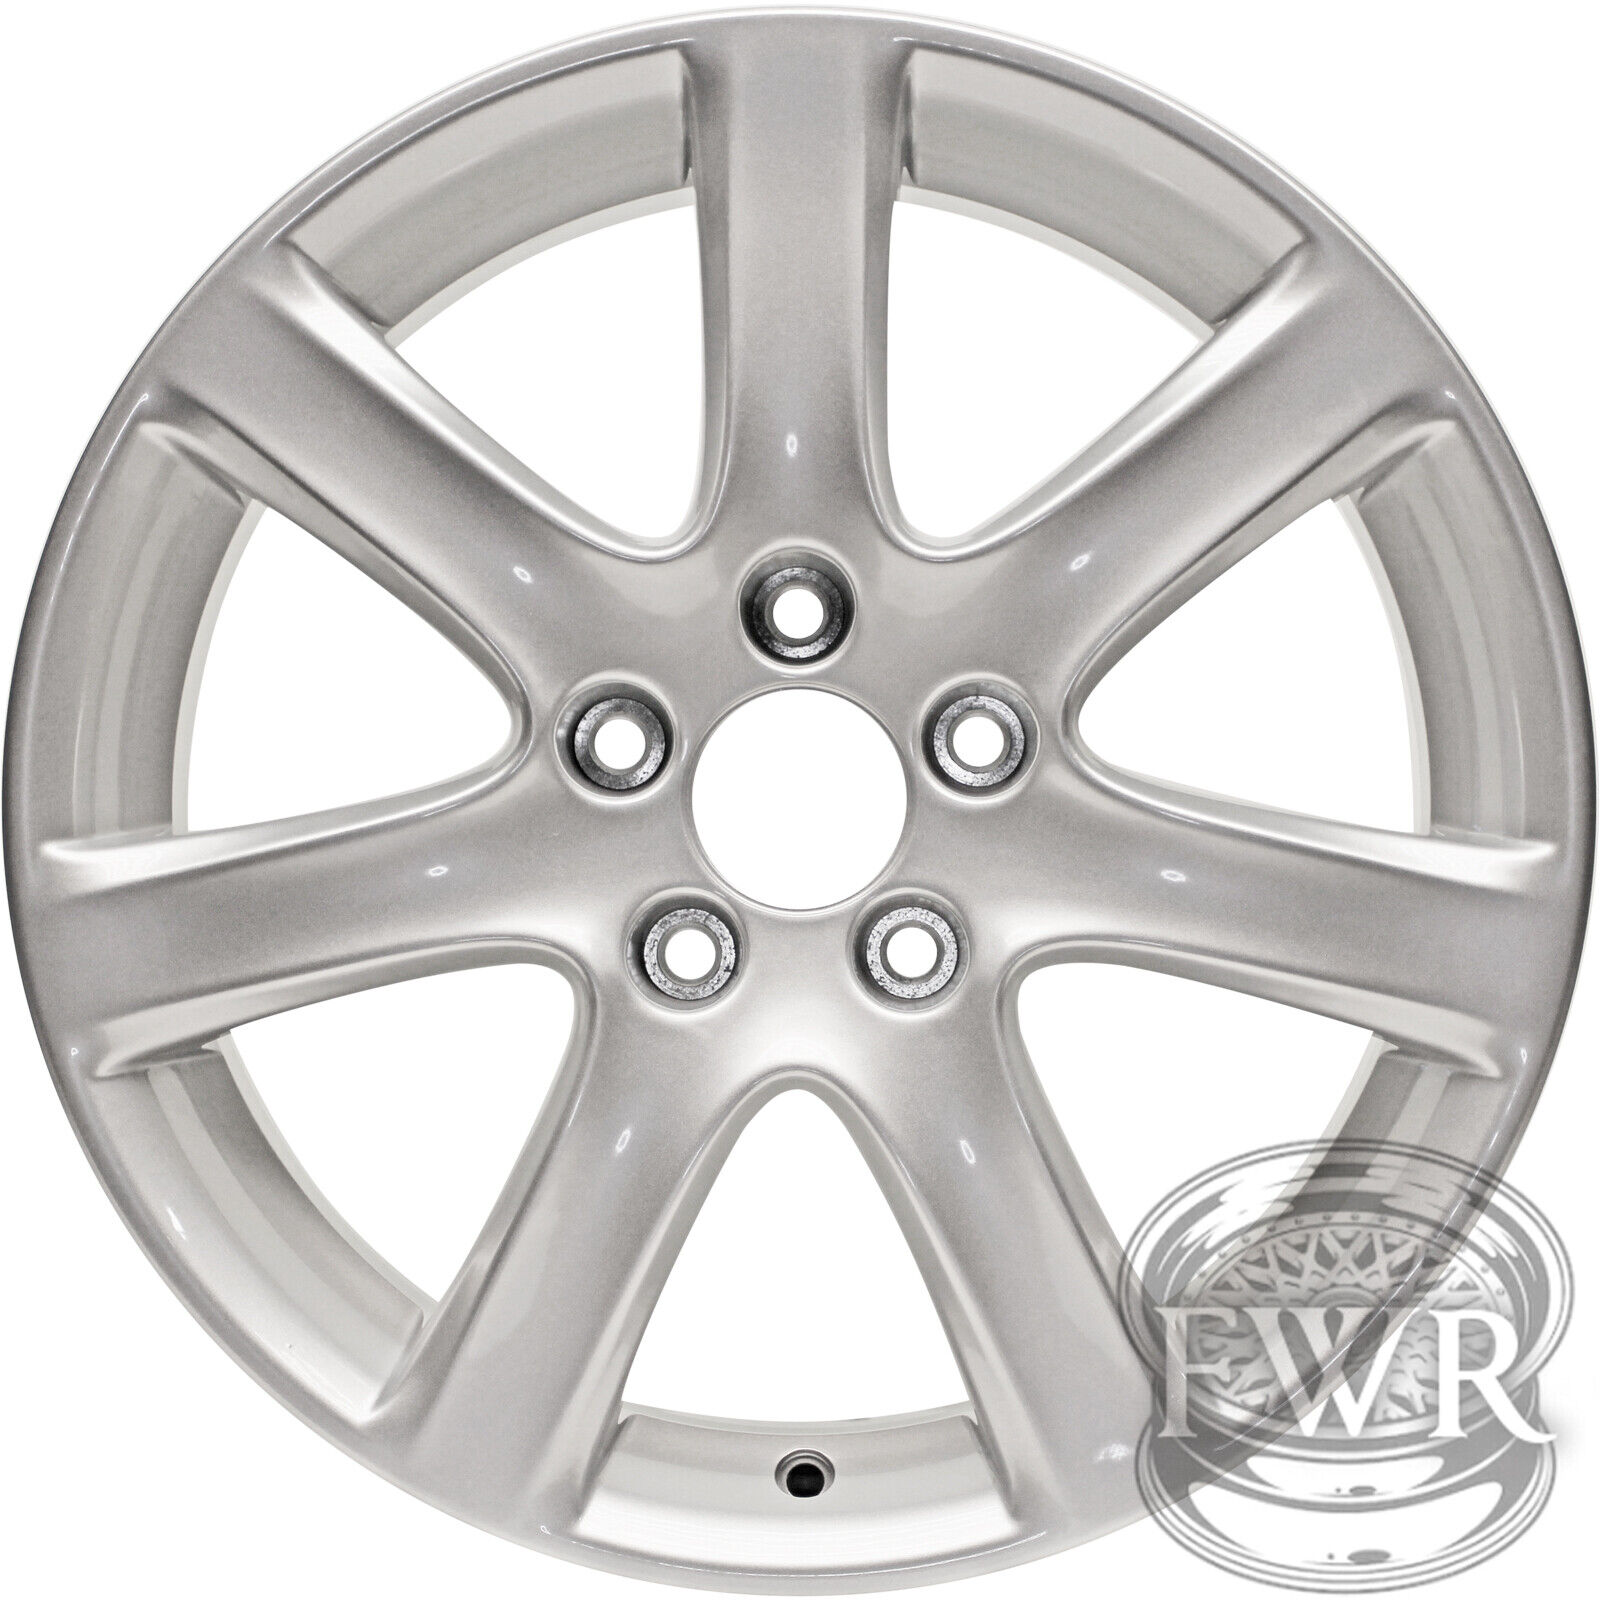 "New 17"" Replacement Alloy Wheel Rim For 2004-2005 Acura"